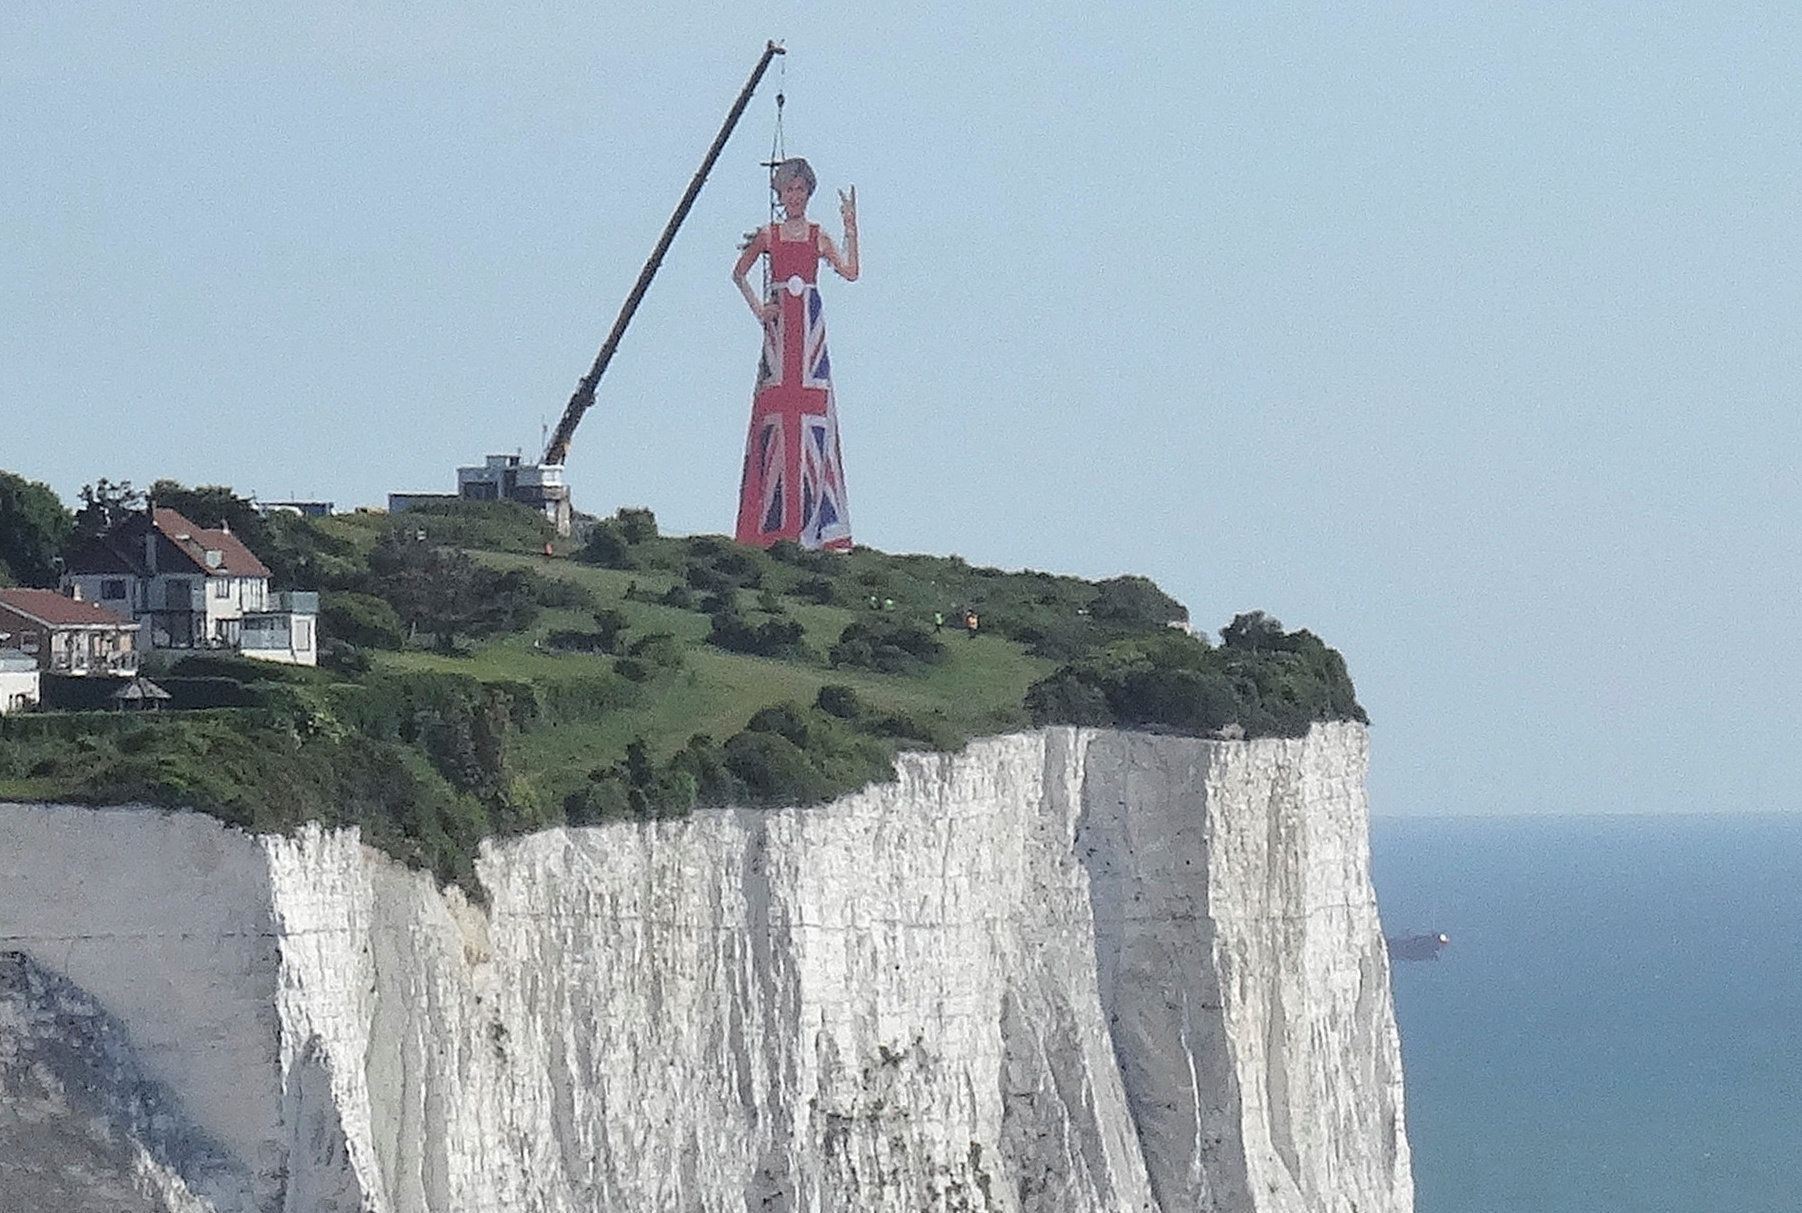 A giant scaffolding sculpture with an image of Britain's Prime Minister wearing the Union Flag and making a gesture towards continental Europe is seen on top of the cliffs overlooking the south coast of England and the Channel, June 5, 2017. REUTERS/Simon Hare